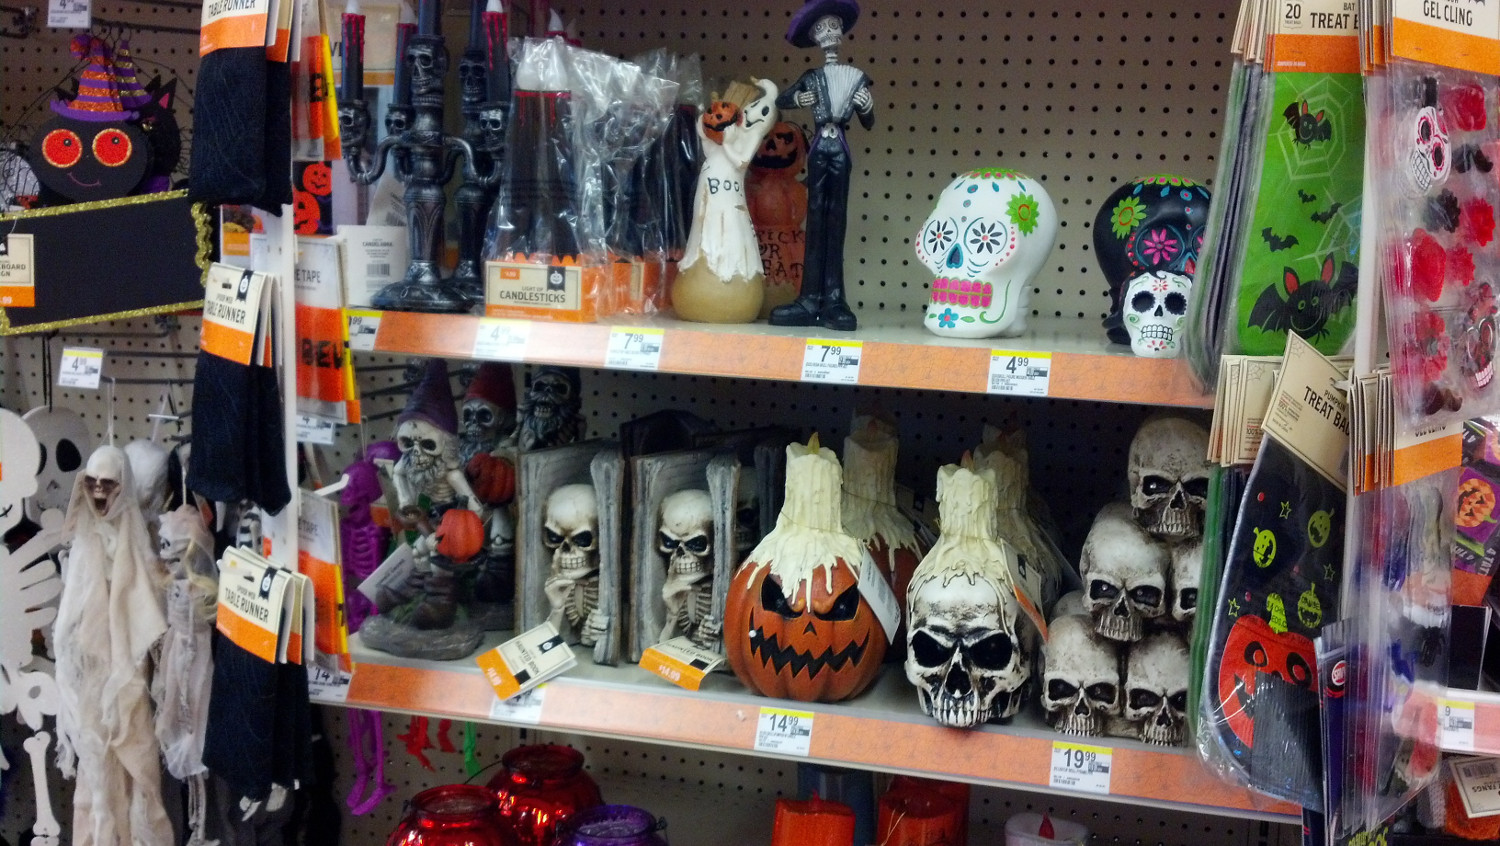 walgreens halloween decorations - Walgreens Christmas Commercial